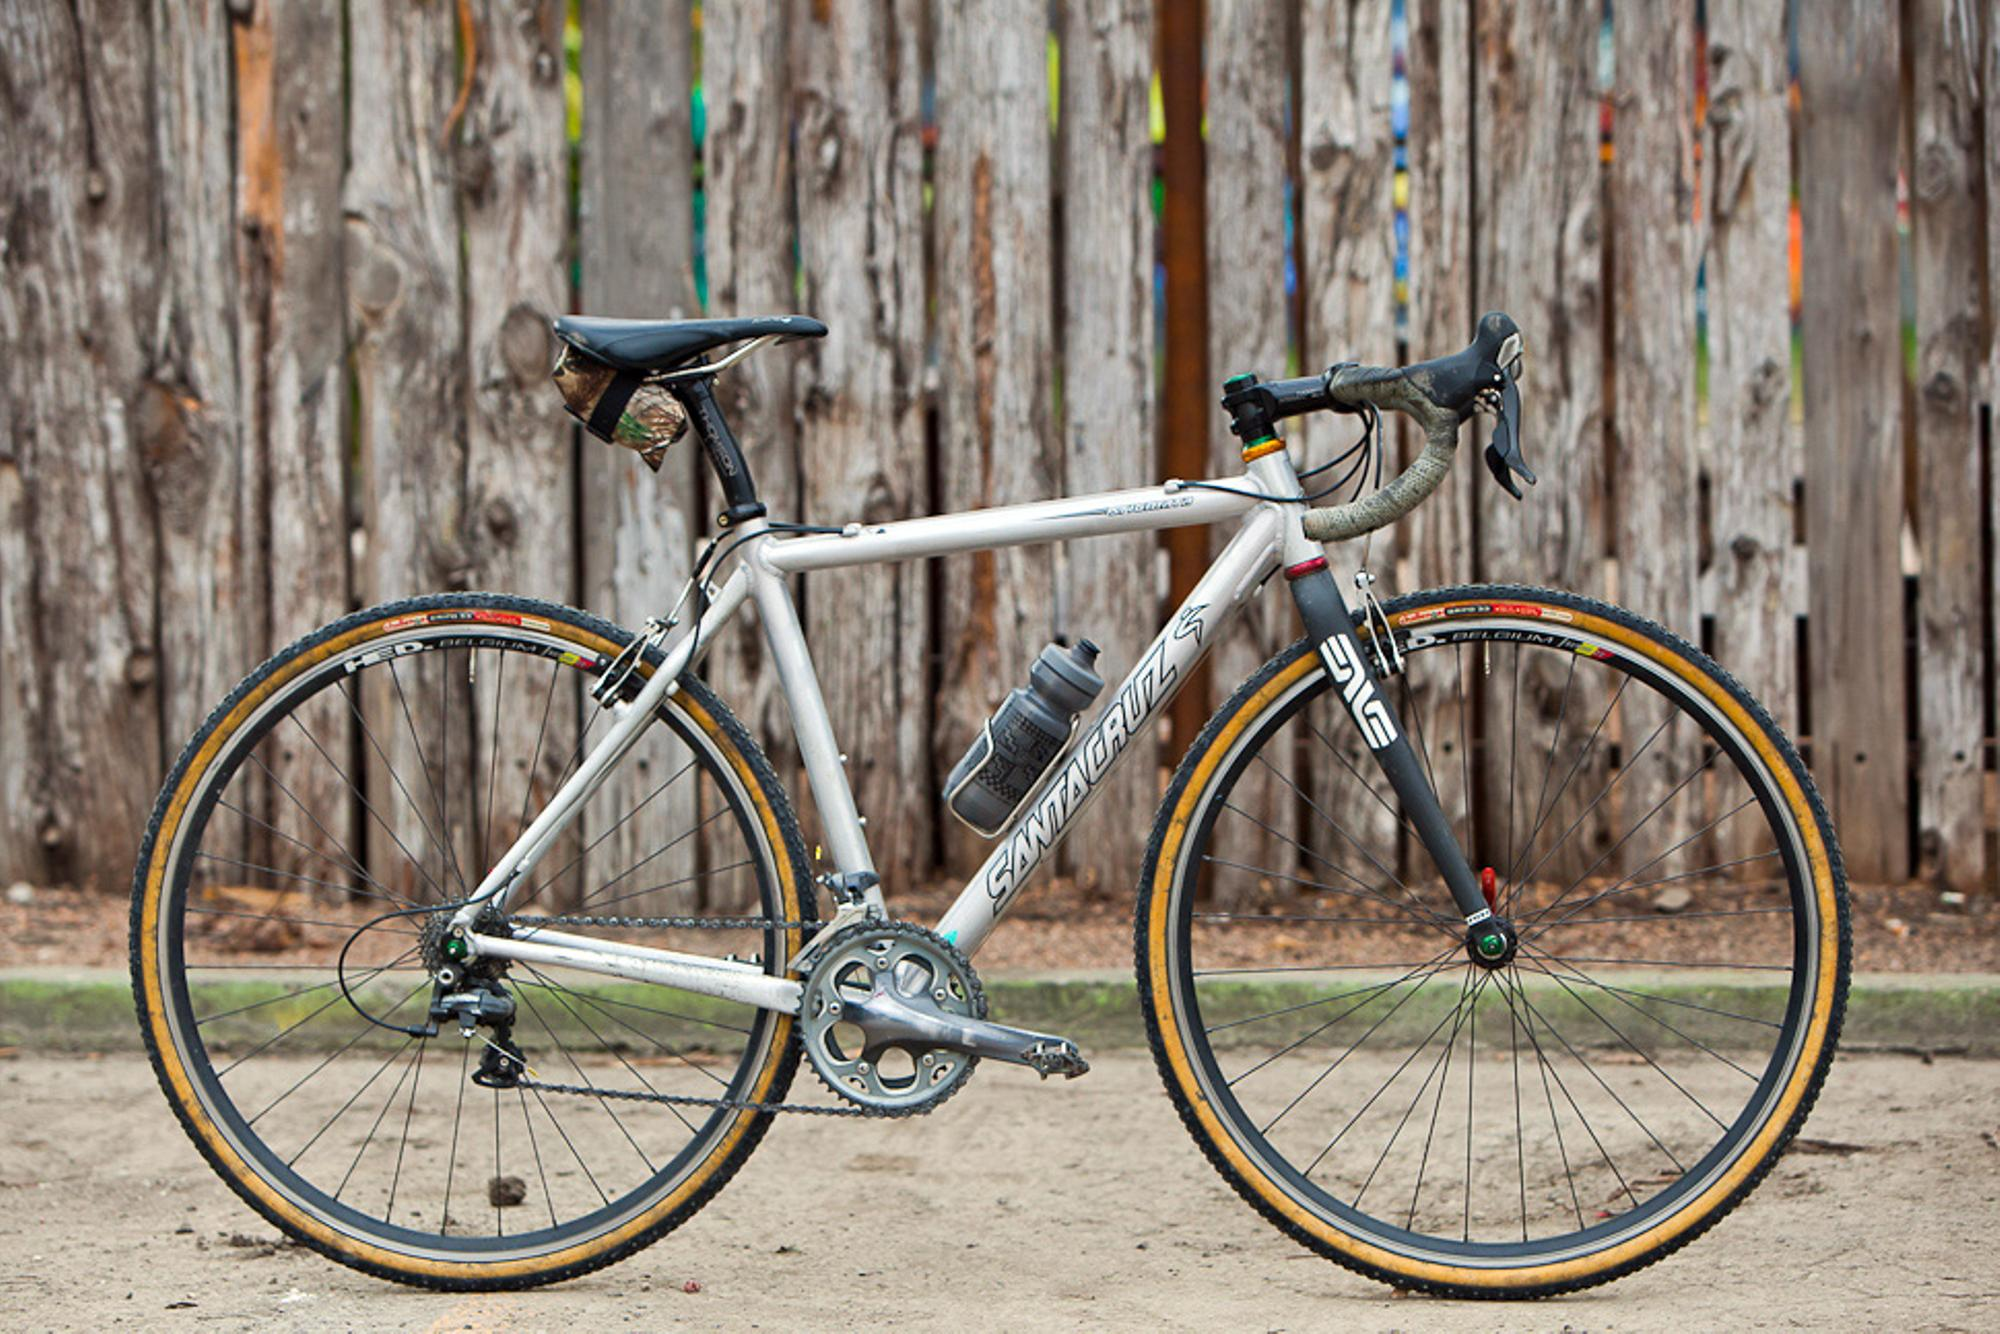 Beautiful Bicycle: Kyle's #Jahblessed Santa Cruz Stigmata Cross